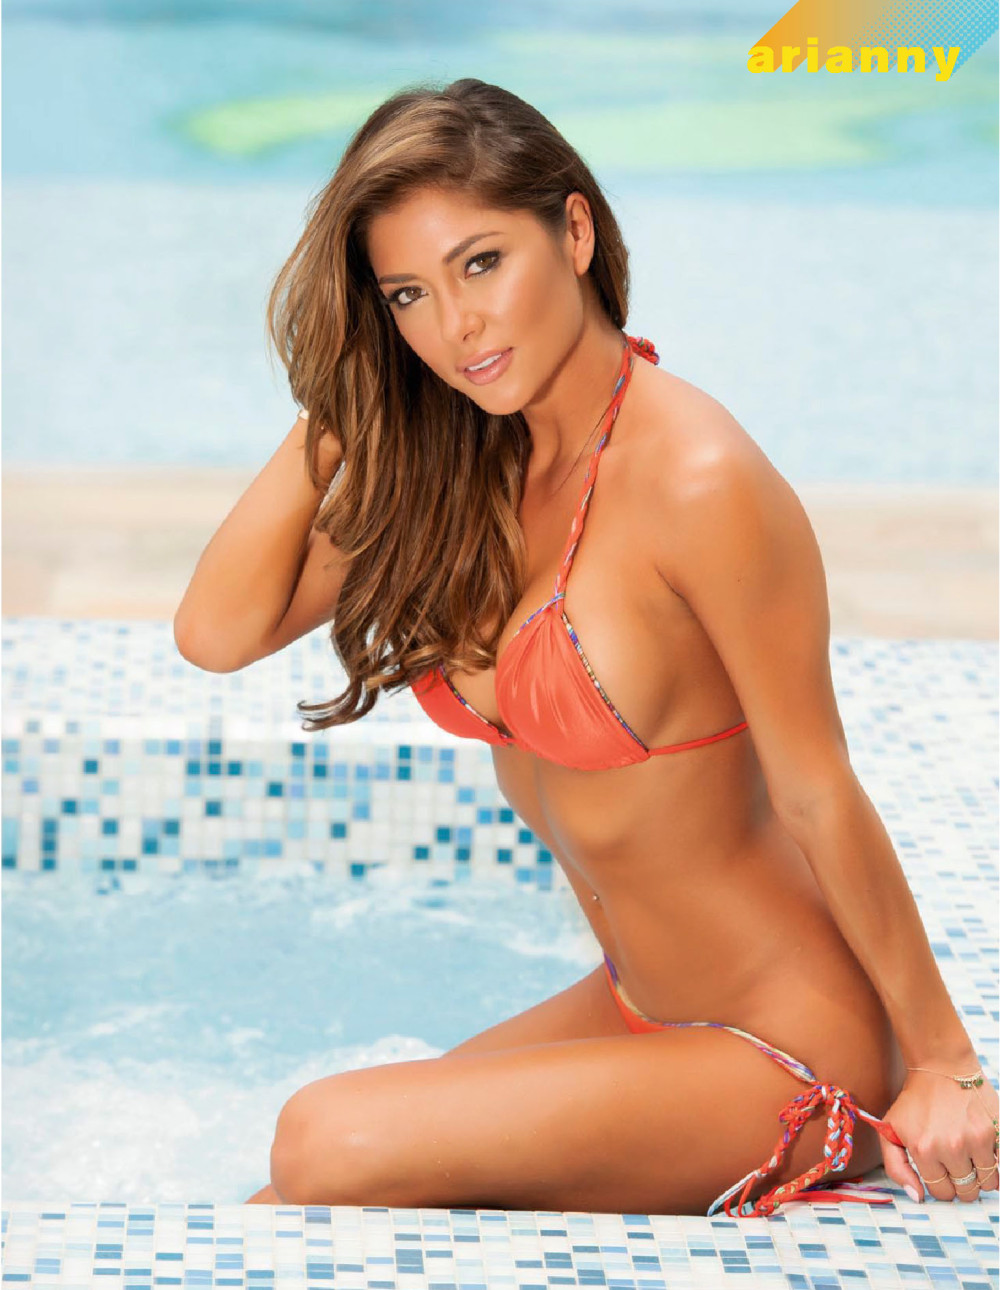 Arianny Celeste graces the cover of the August 2015 edition of FHM.